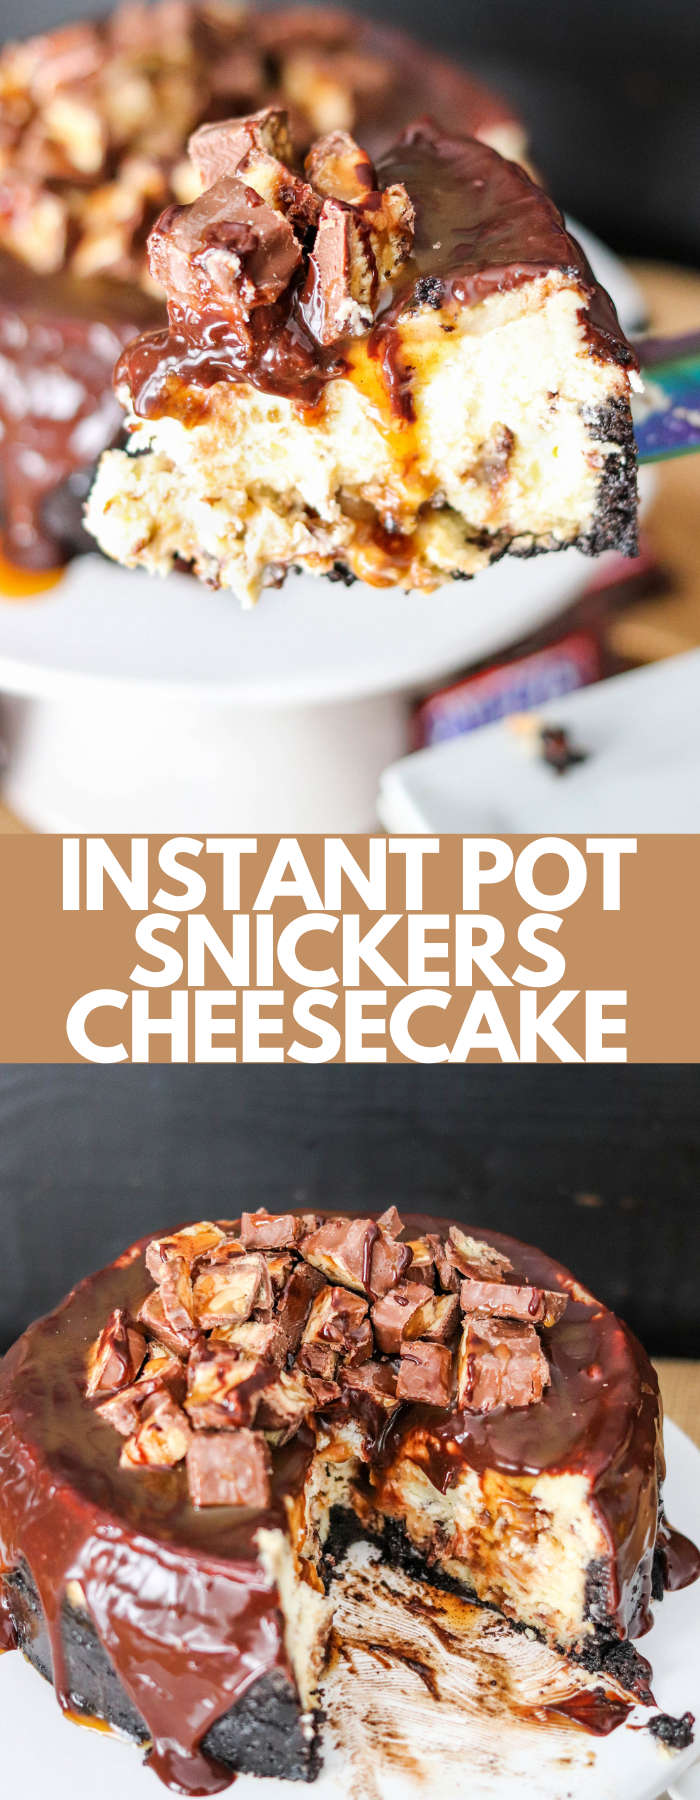 Instant Pot Snickers Cheesecake is a dessert that takes very little effort! Packed with caramel, peanuts, and milk chocolate, this is the best cheesecake ever!